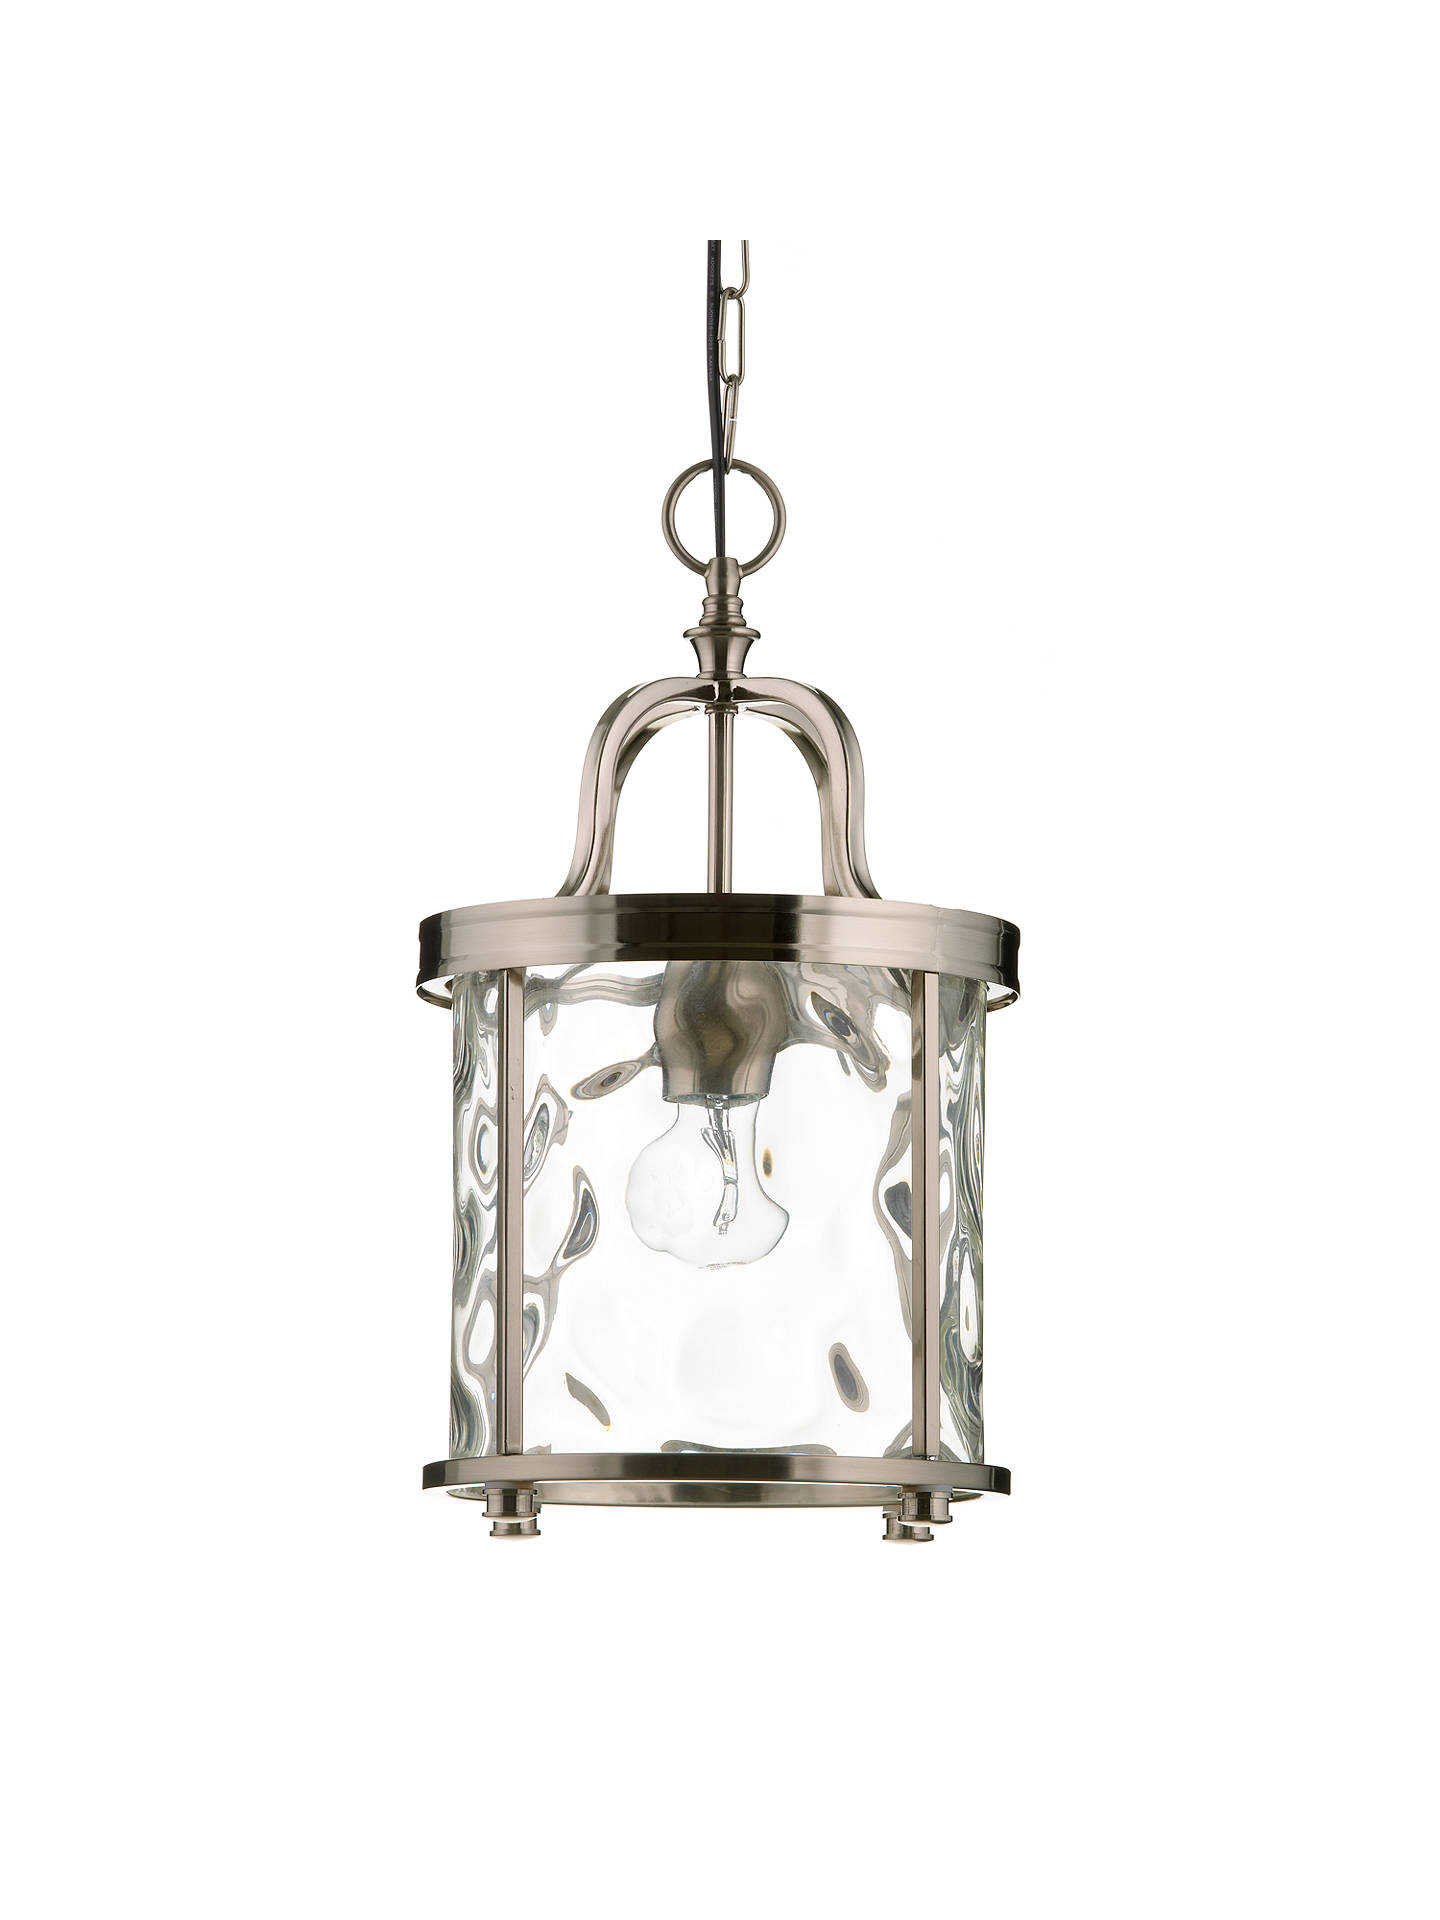 BuyJohn Lewis Warwick Lantern, Nickel Online at johnlewis.com